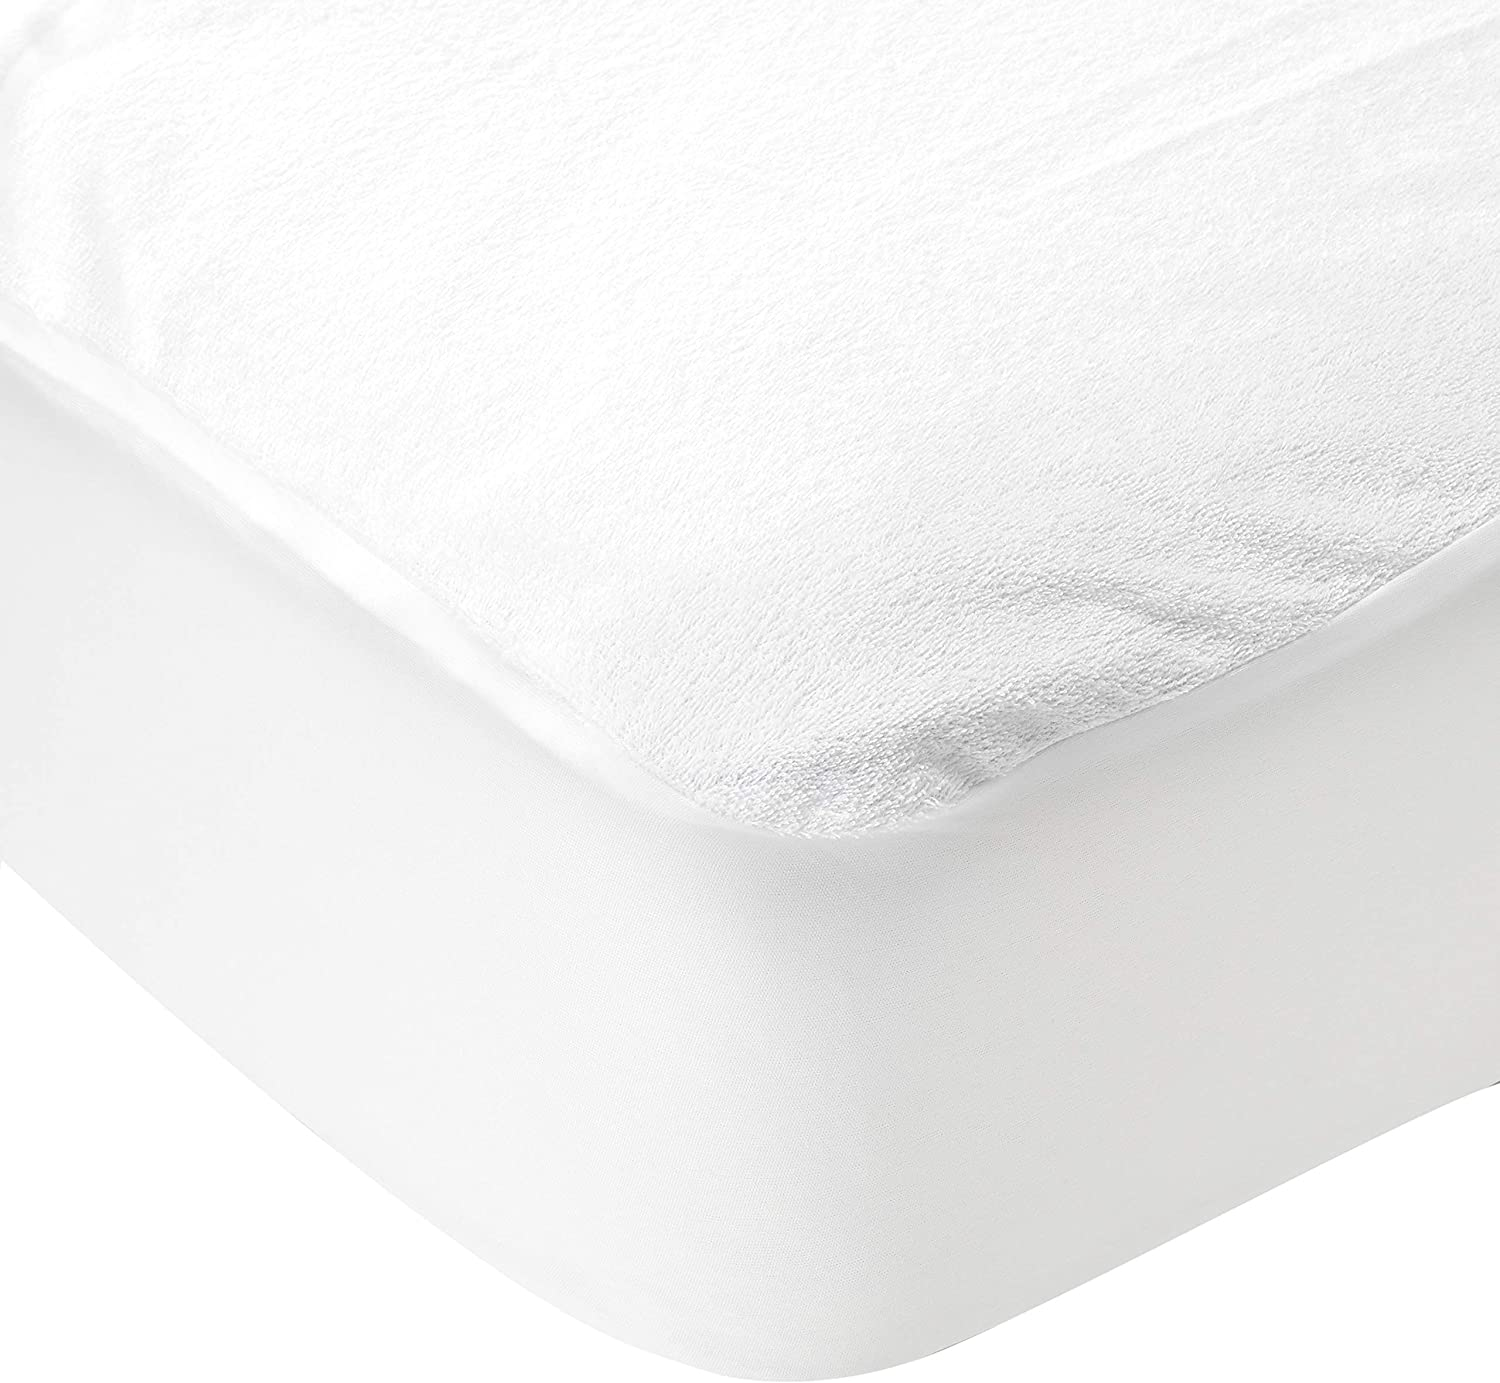 Twin Deconovo Zippered Mattress Encasement Cotton Terry Fitted Soft Breathable Waterproof Vinyl Free and Noiseless Protector Cover 12 Deep